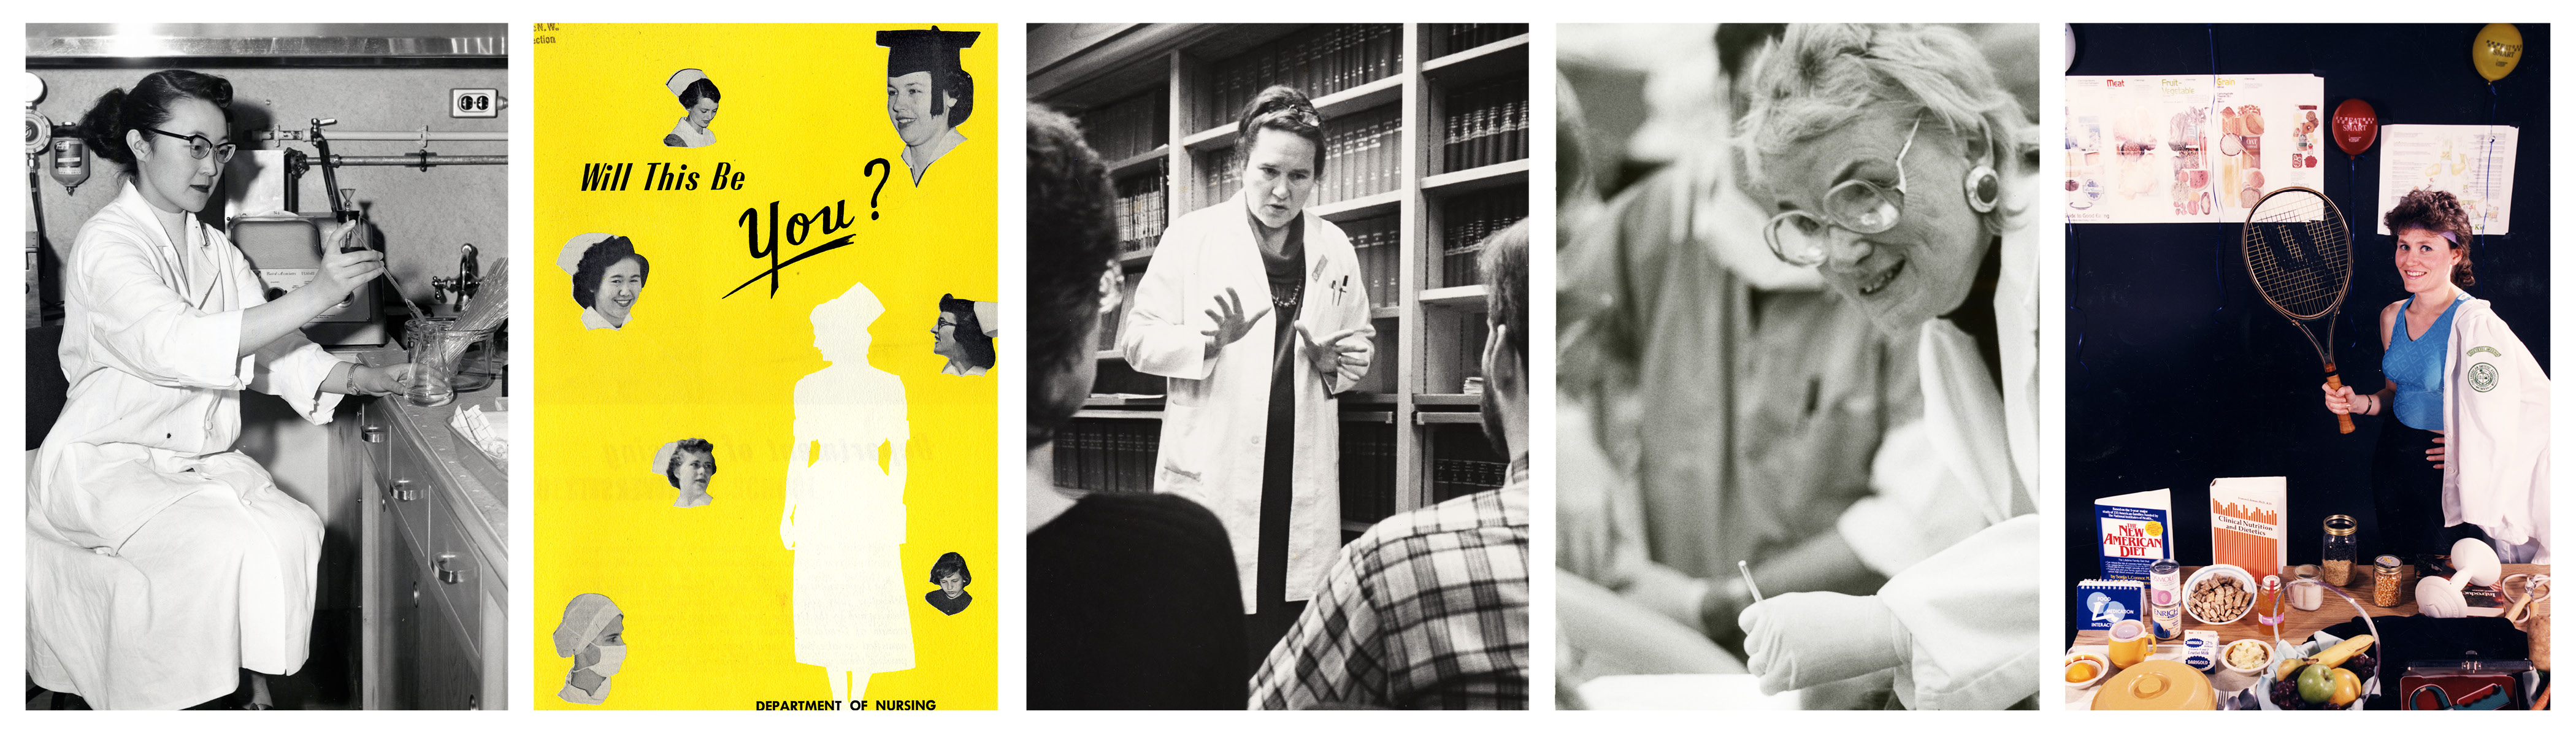 "Banner image for HCA exhibit, ""There's a Place for You: Oregon Women in the Health Sciences"" depicts 5 images of women in health professions"